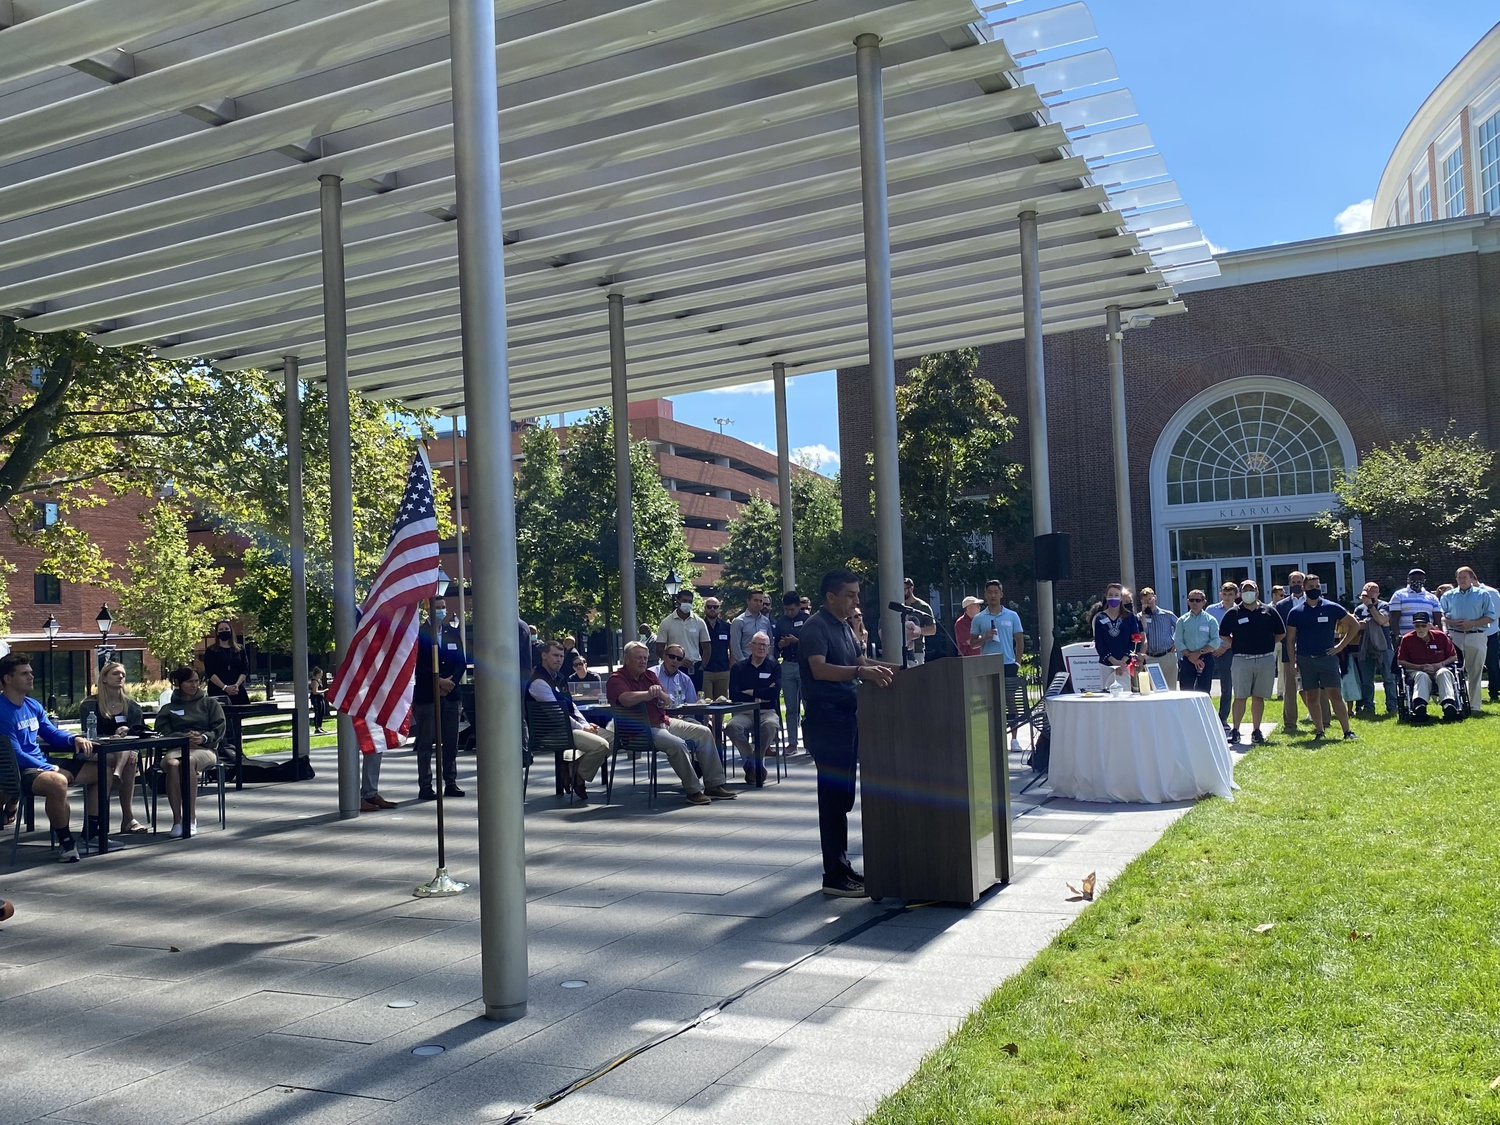 Dean of Harvard College Rakesh Khurana said on the 20th anniversary of 9/11 that the terrorist attacks spurred generations of Americans to lead lives of service.